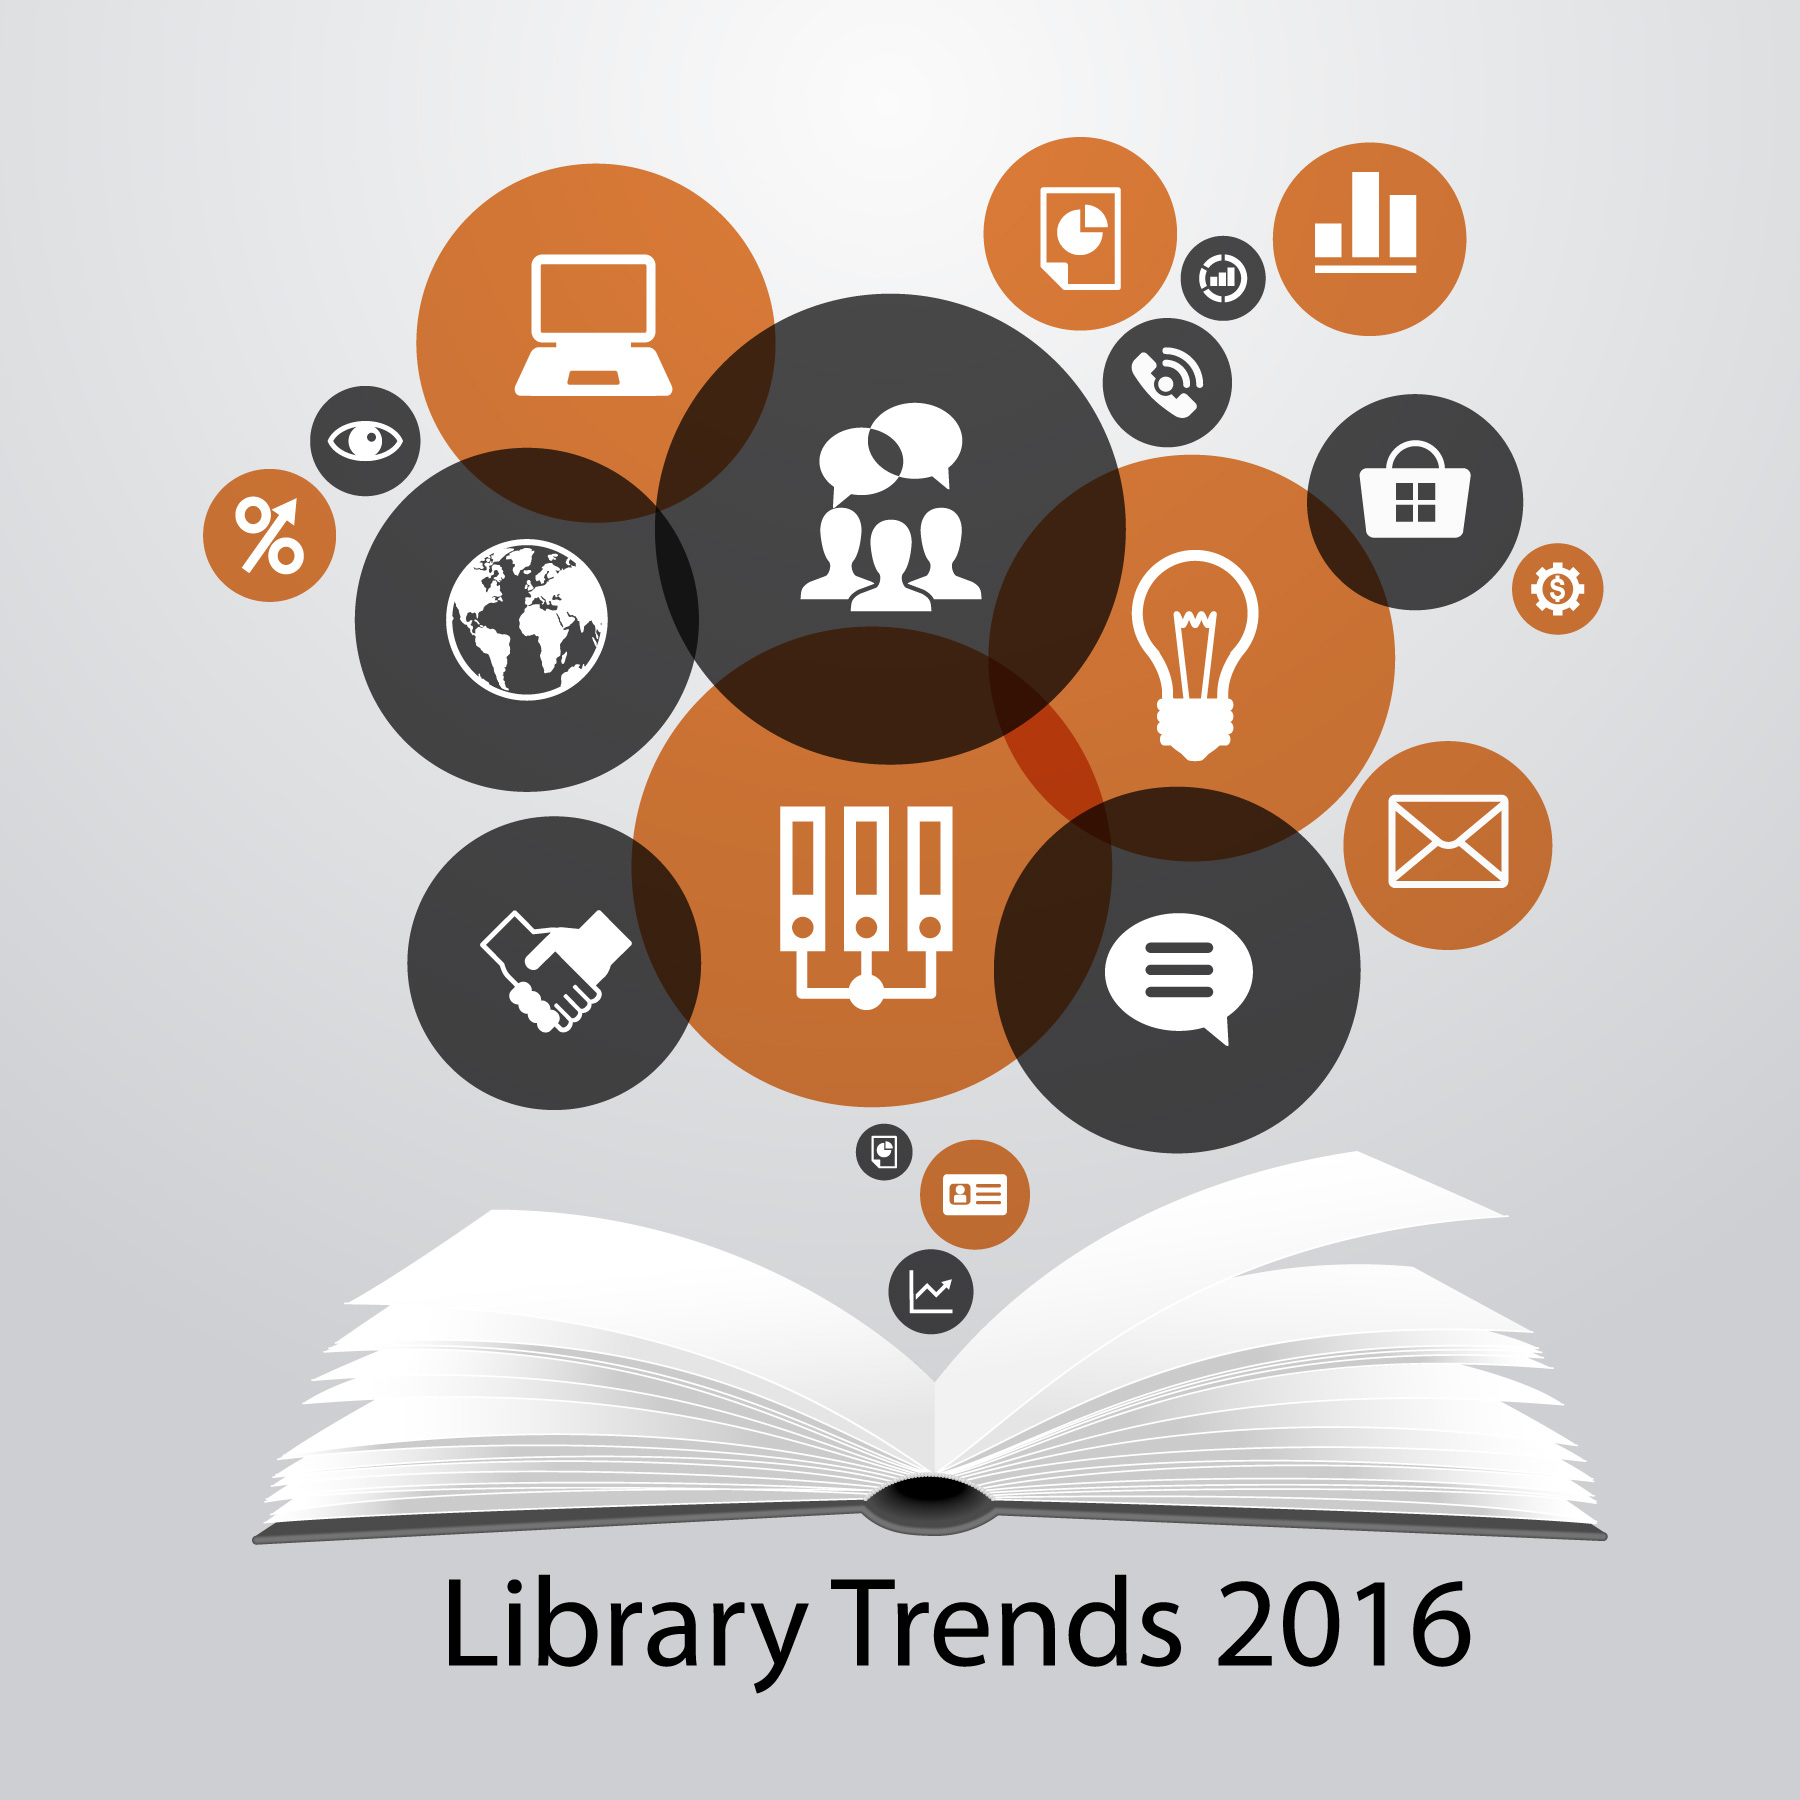 Library Trends in 2016